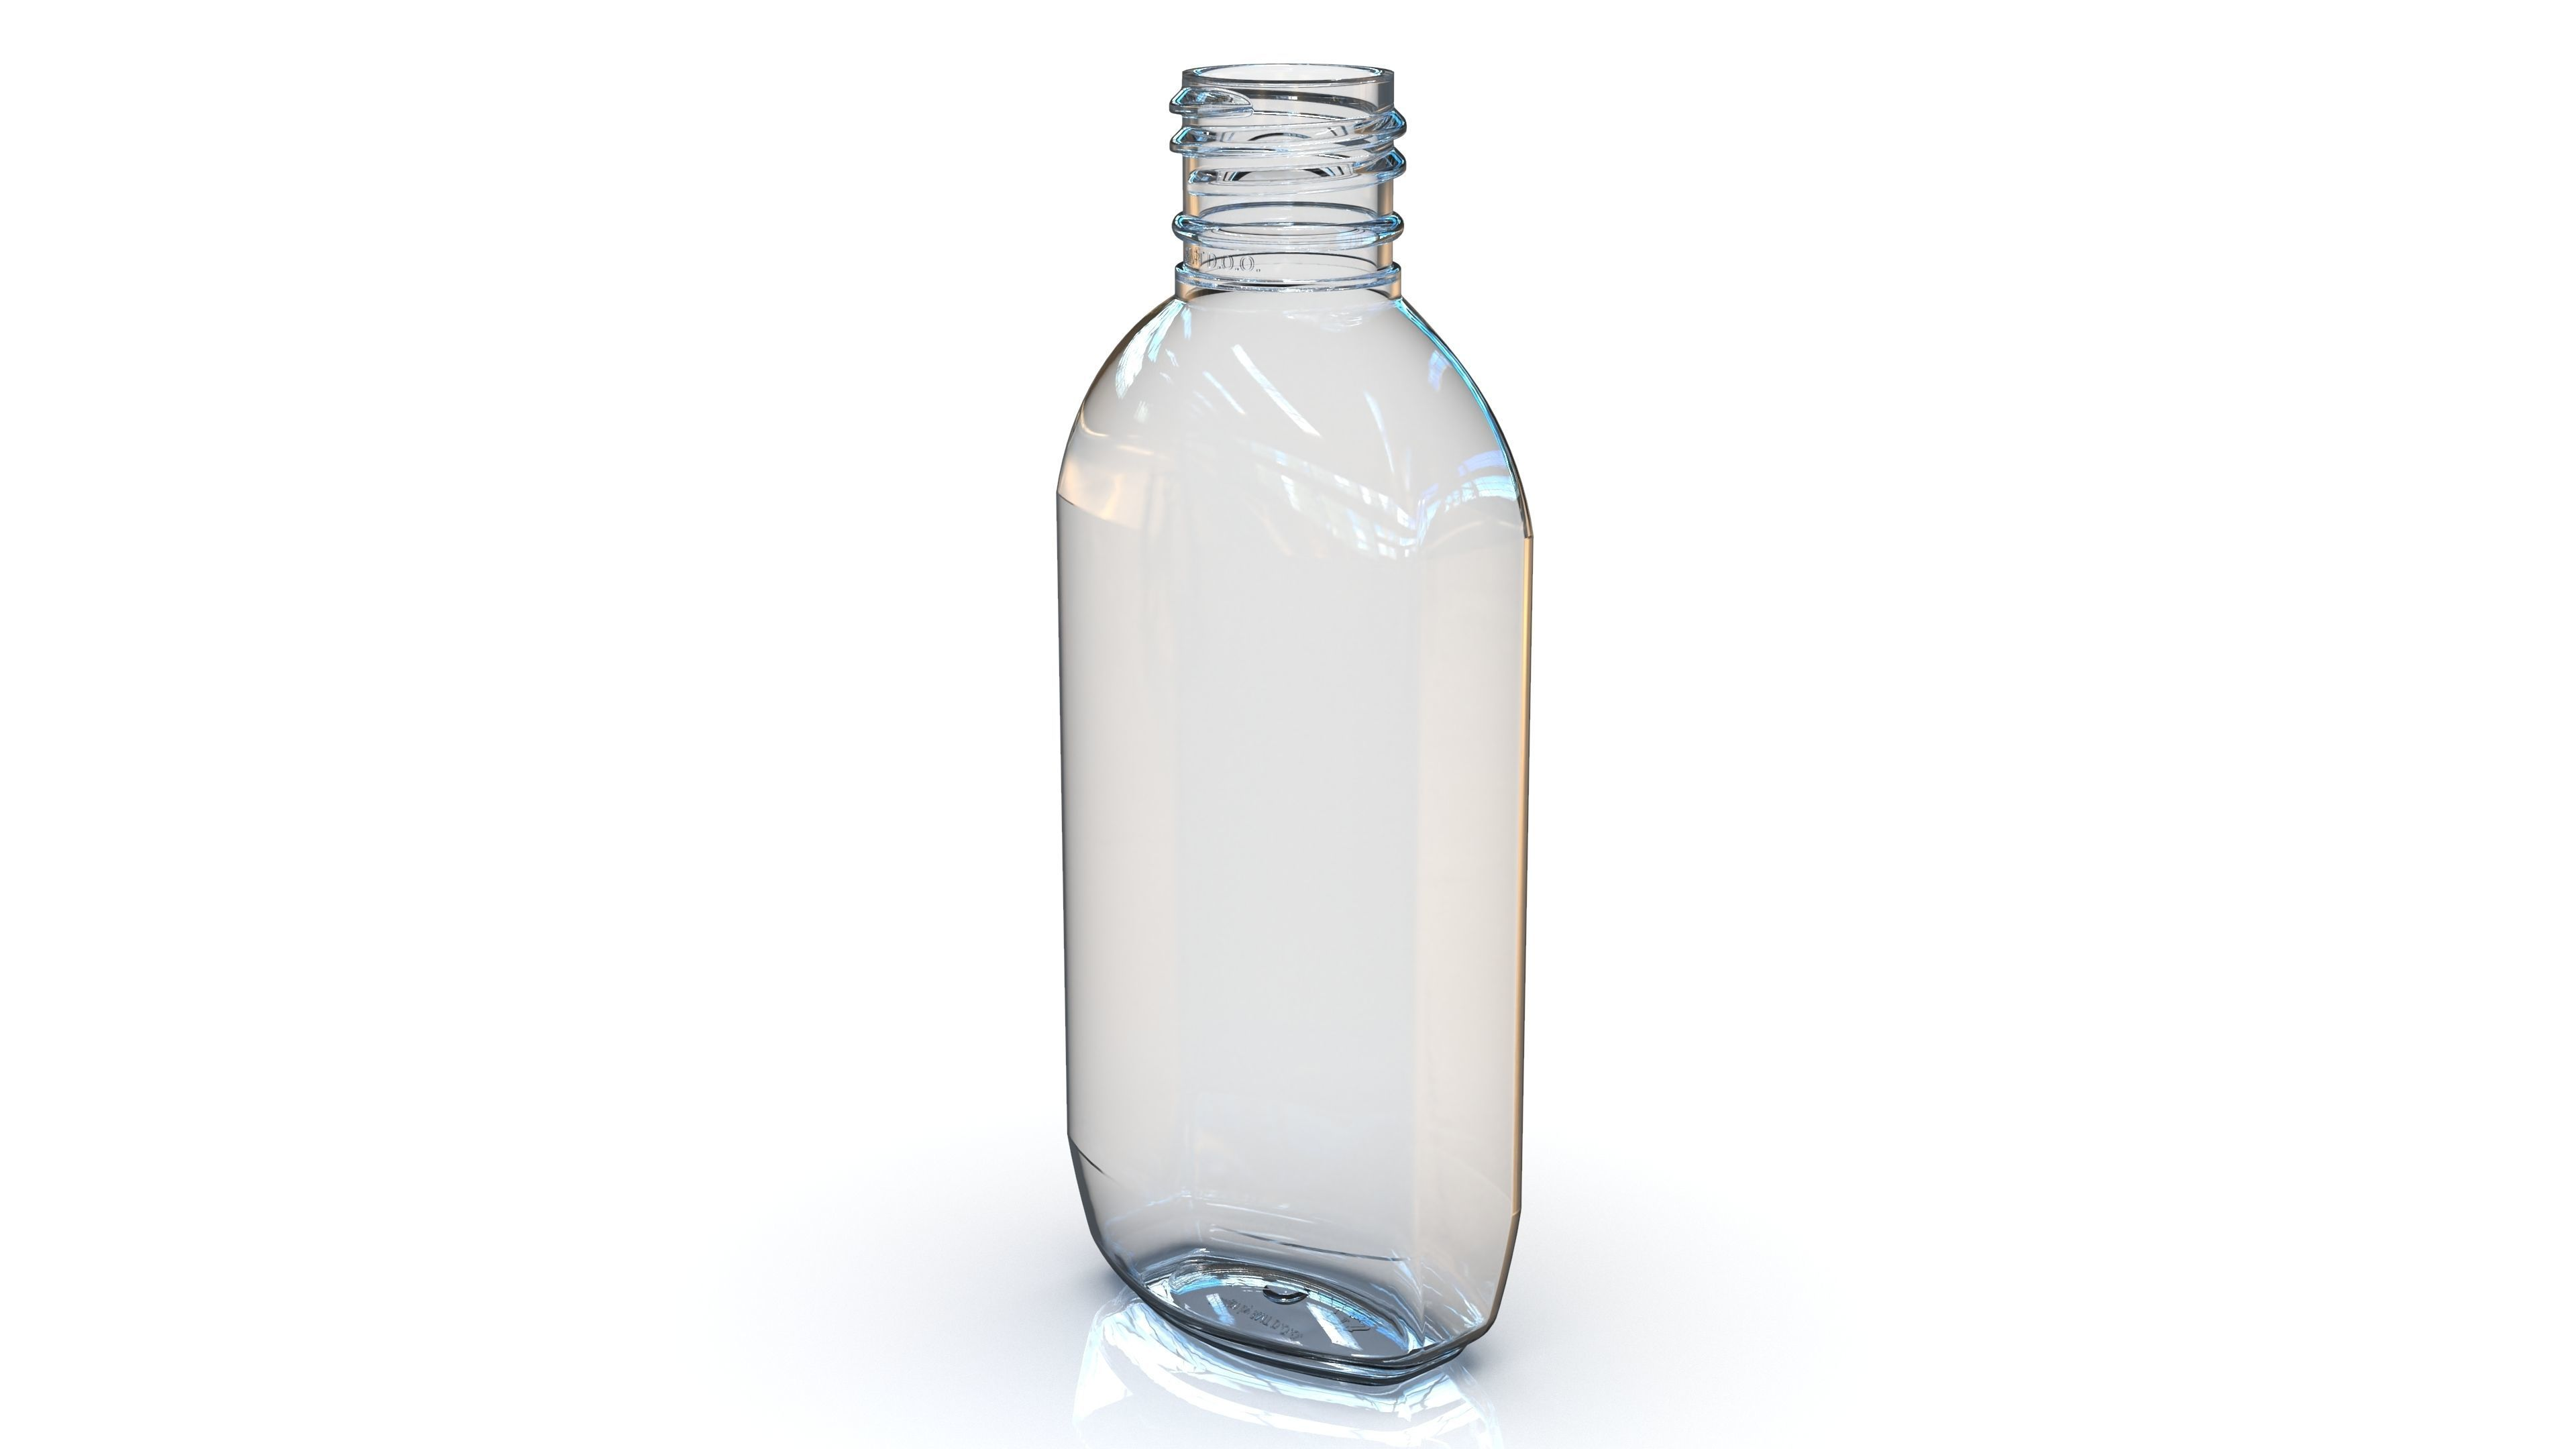 PET Bottle SP - 415 - 20 - M - BF 75 mL - for water - drinks